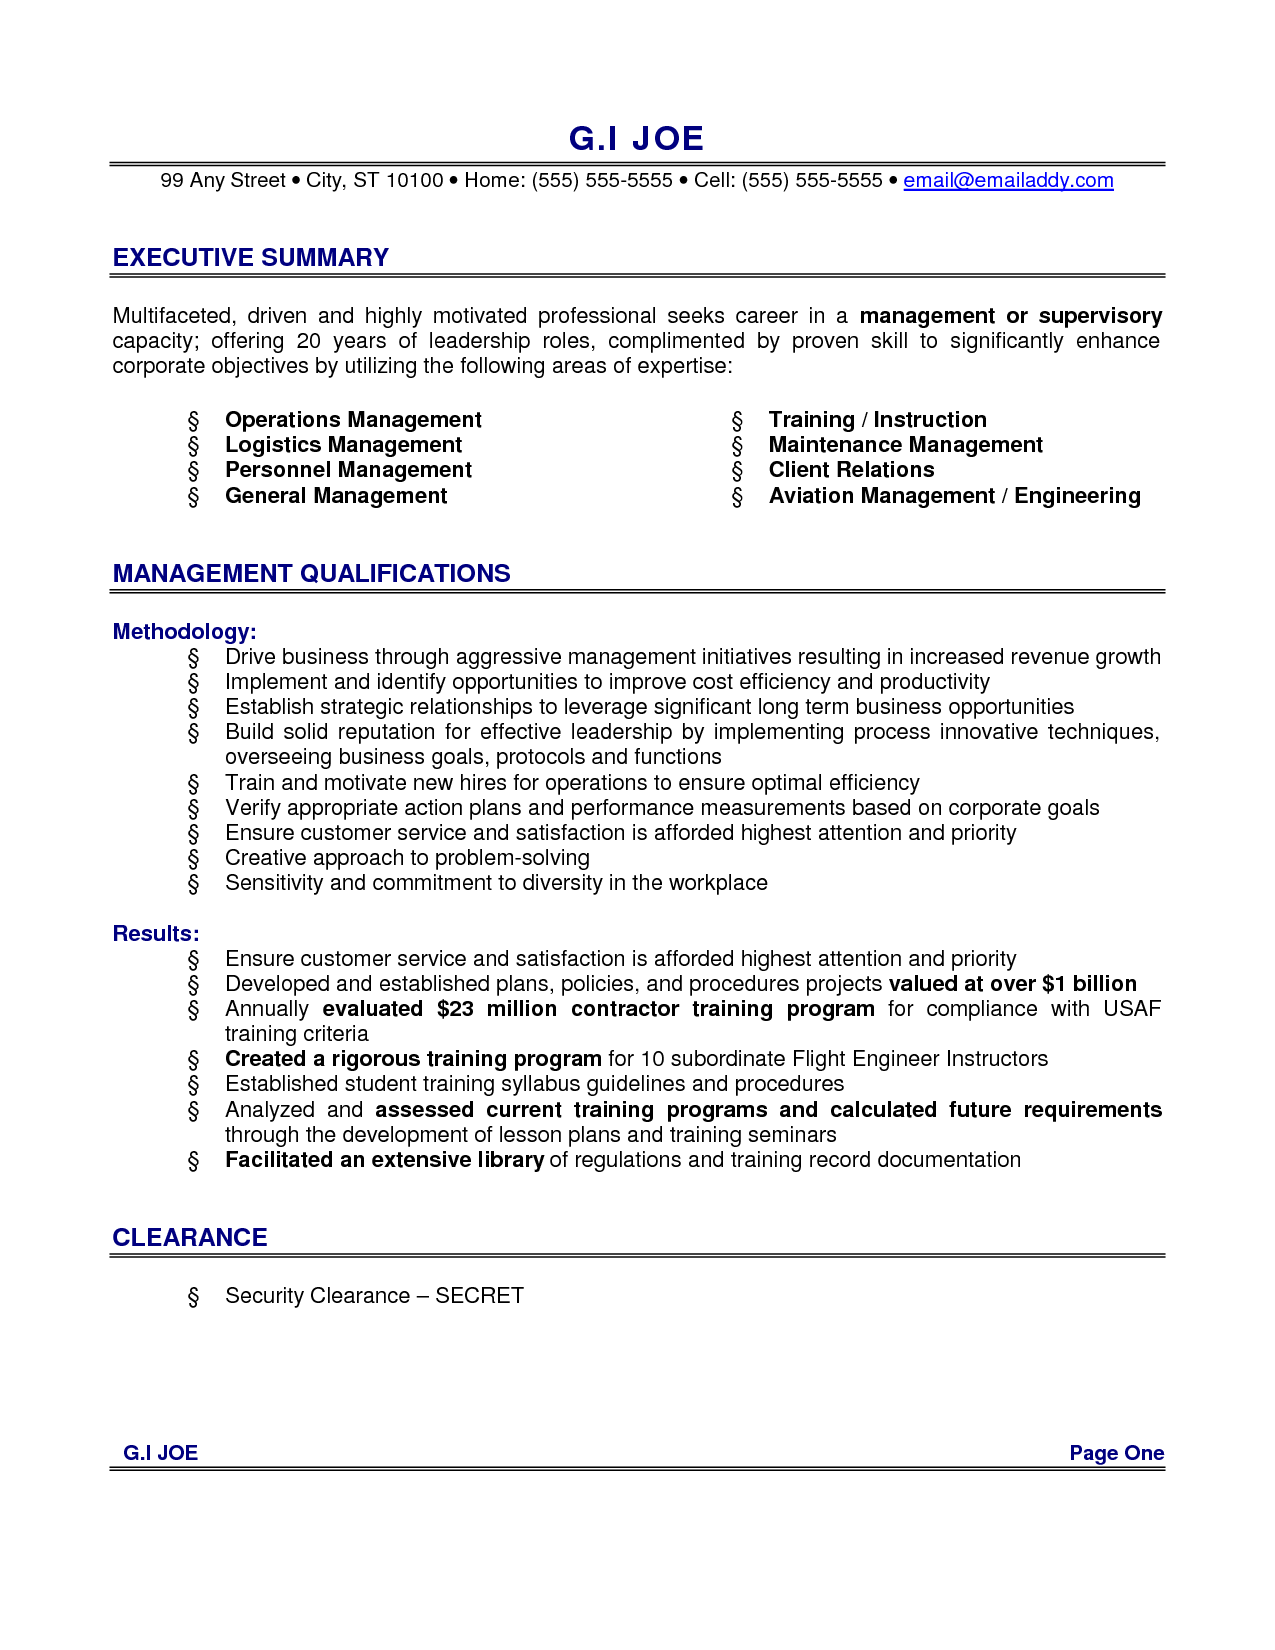 Resume-Examples For Executive Summary With Management Qualifications